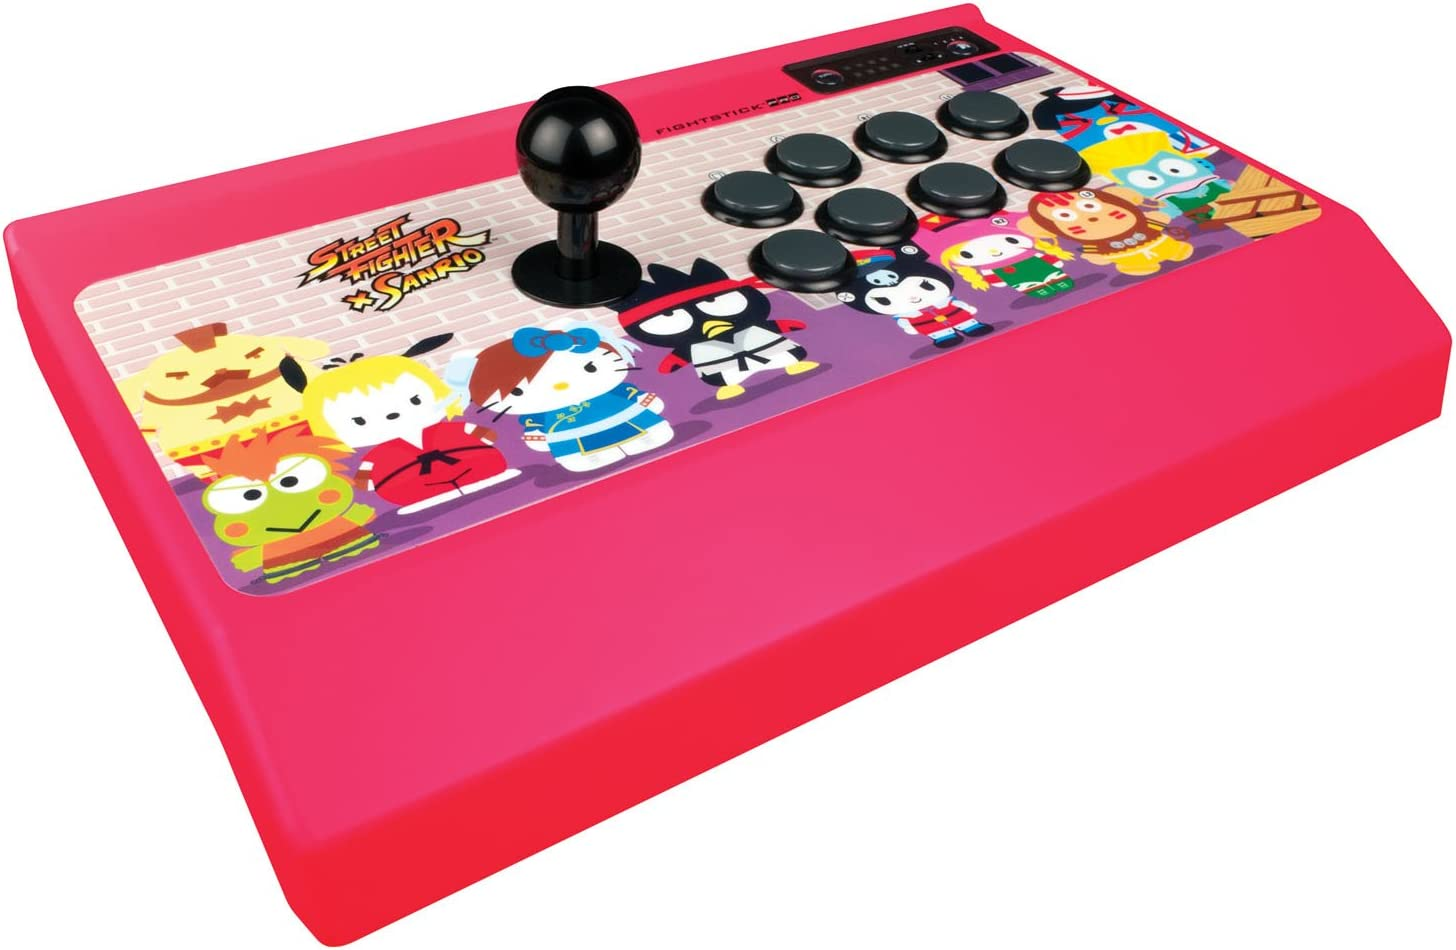 Amazon.com: Street Fighter x Sanrio Arcade FightStick PRO for PlayStation 3: Video Games